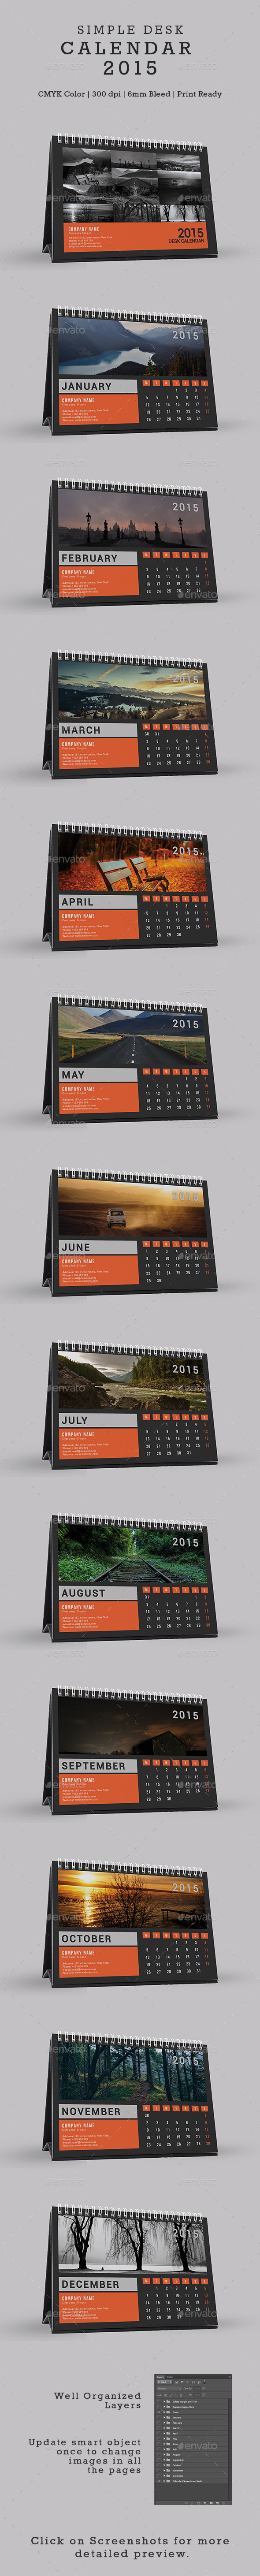 Simple Desk Calendar 2015 - Calendars Stationery